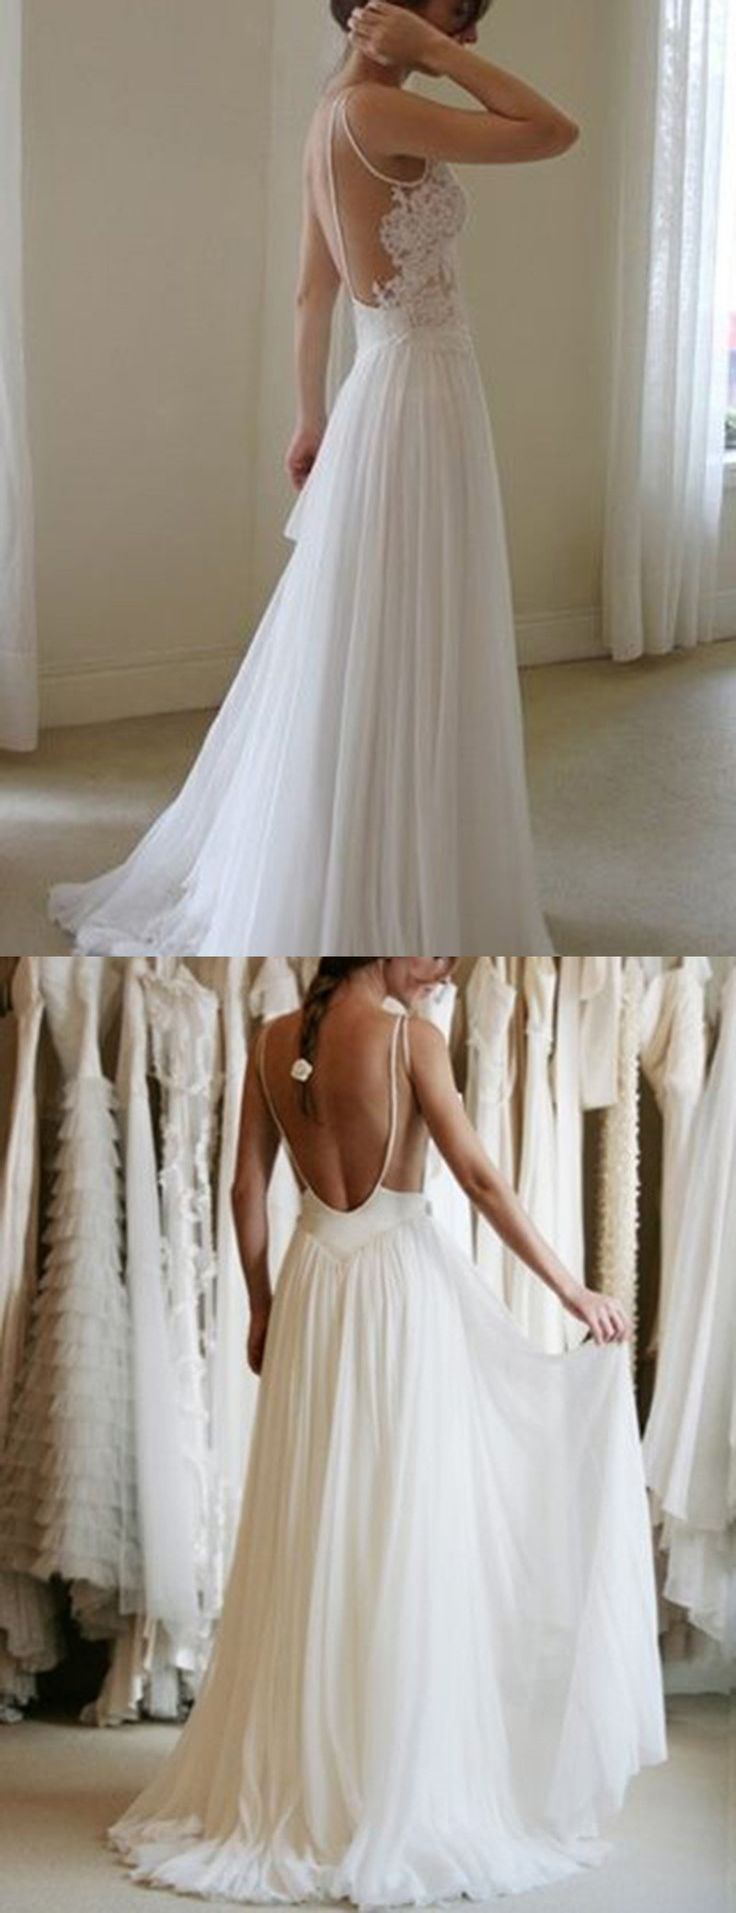 wedding dresses, wedding ideas, open back wedding dress, backless ...